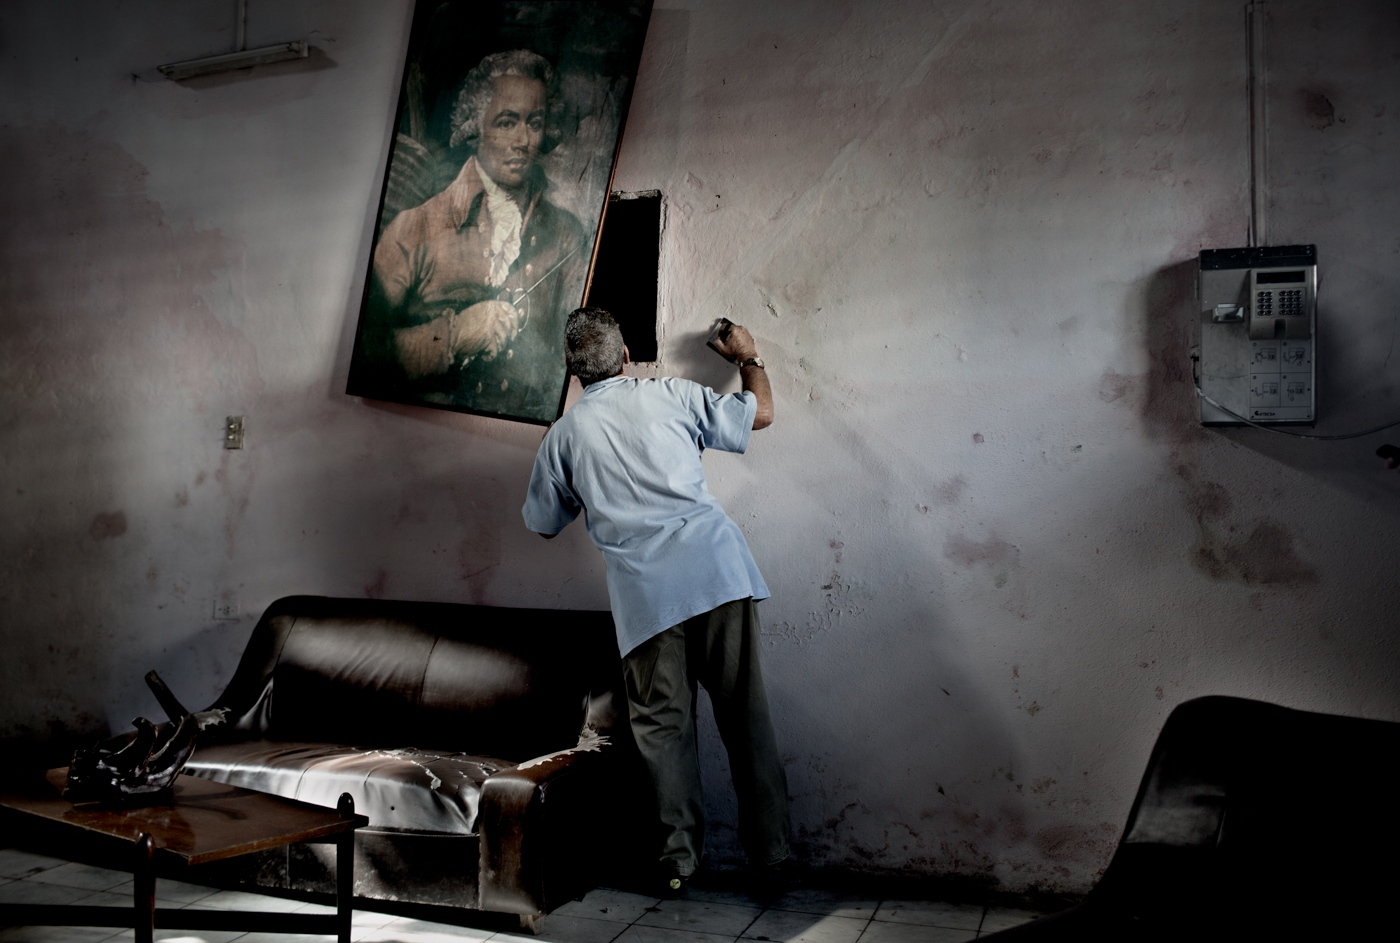 A man looks behind a painting at the Laura Alonso Dance Academy to read the water meter. Laura Alonso Academy is an offset of the National Ballet. To date, most of its graduates have defected to various countries outside of Cuba. The Academy functions mostly on donations as the funds for the arts are mostly spent on the National Ballet.